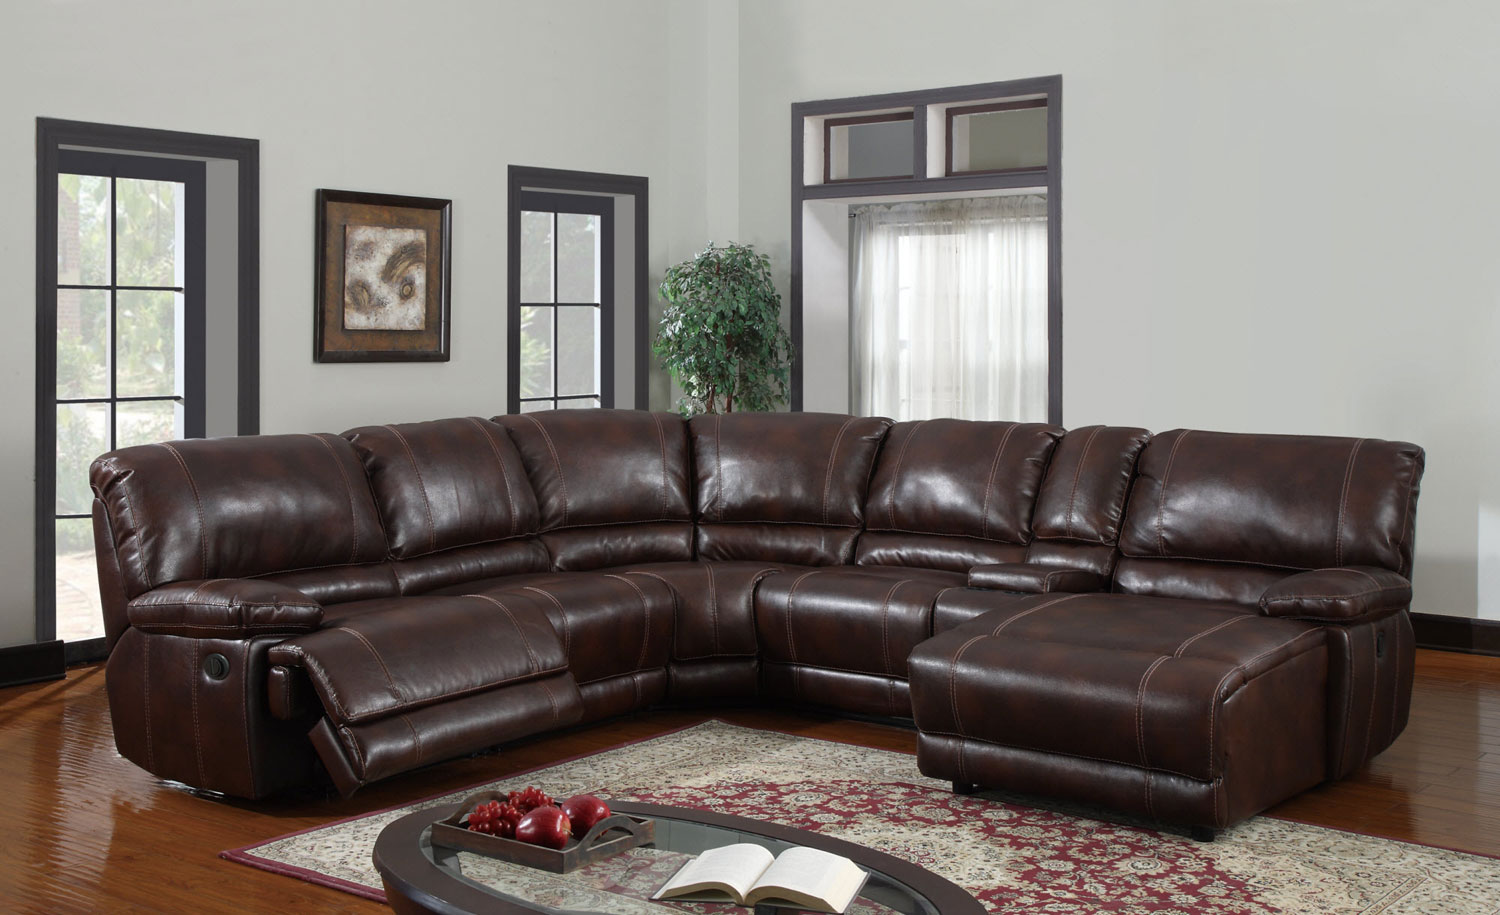 Global Furniture USA 1953 Power Reclining Sectional Sofa Set   Bonded  Leather   Brown